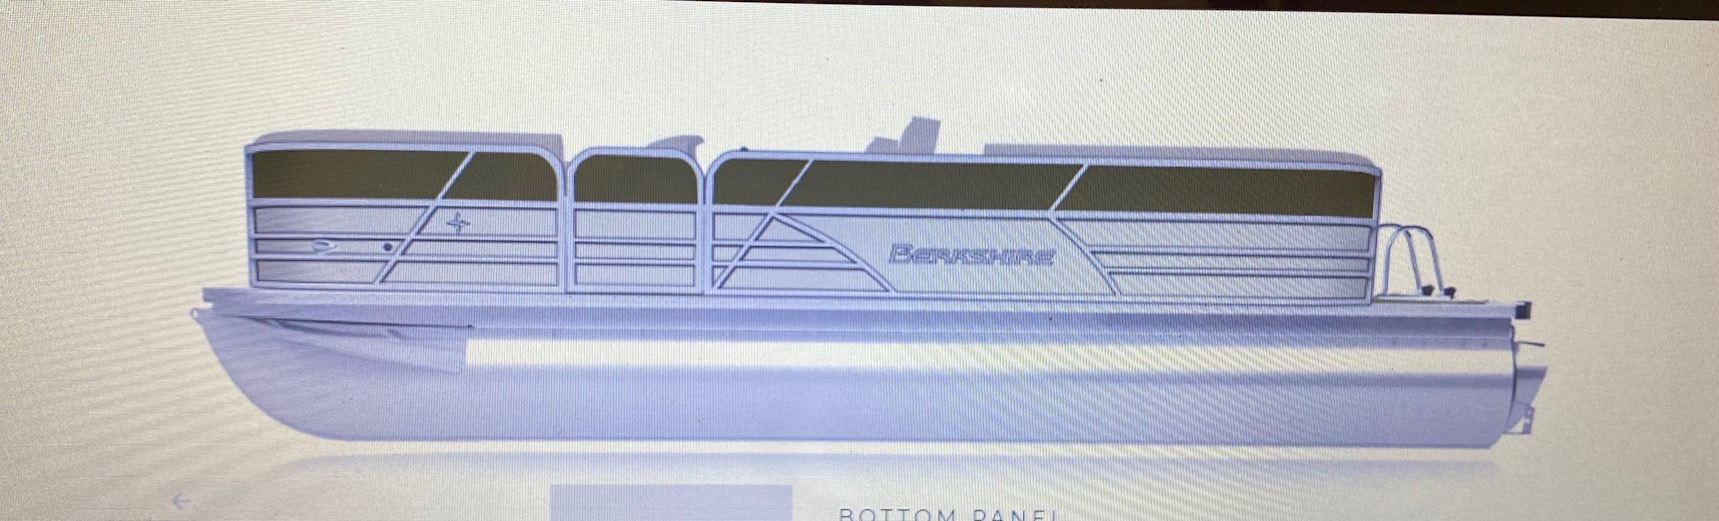 2021 BERKSHIRE CTS Series 22CL 2.75 Tri-toon (On order, secure yours t thumbnail